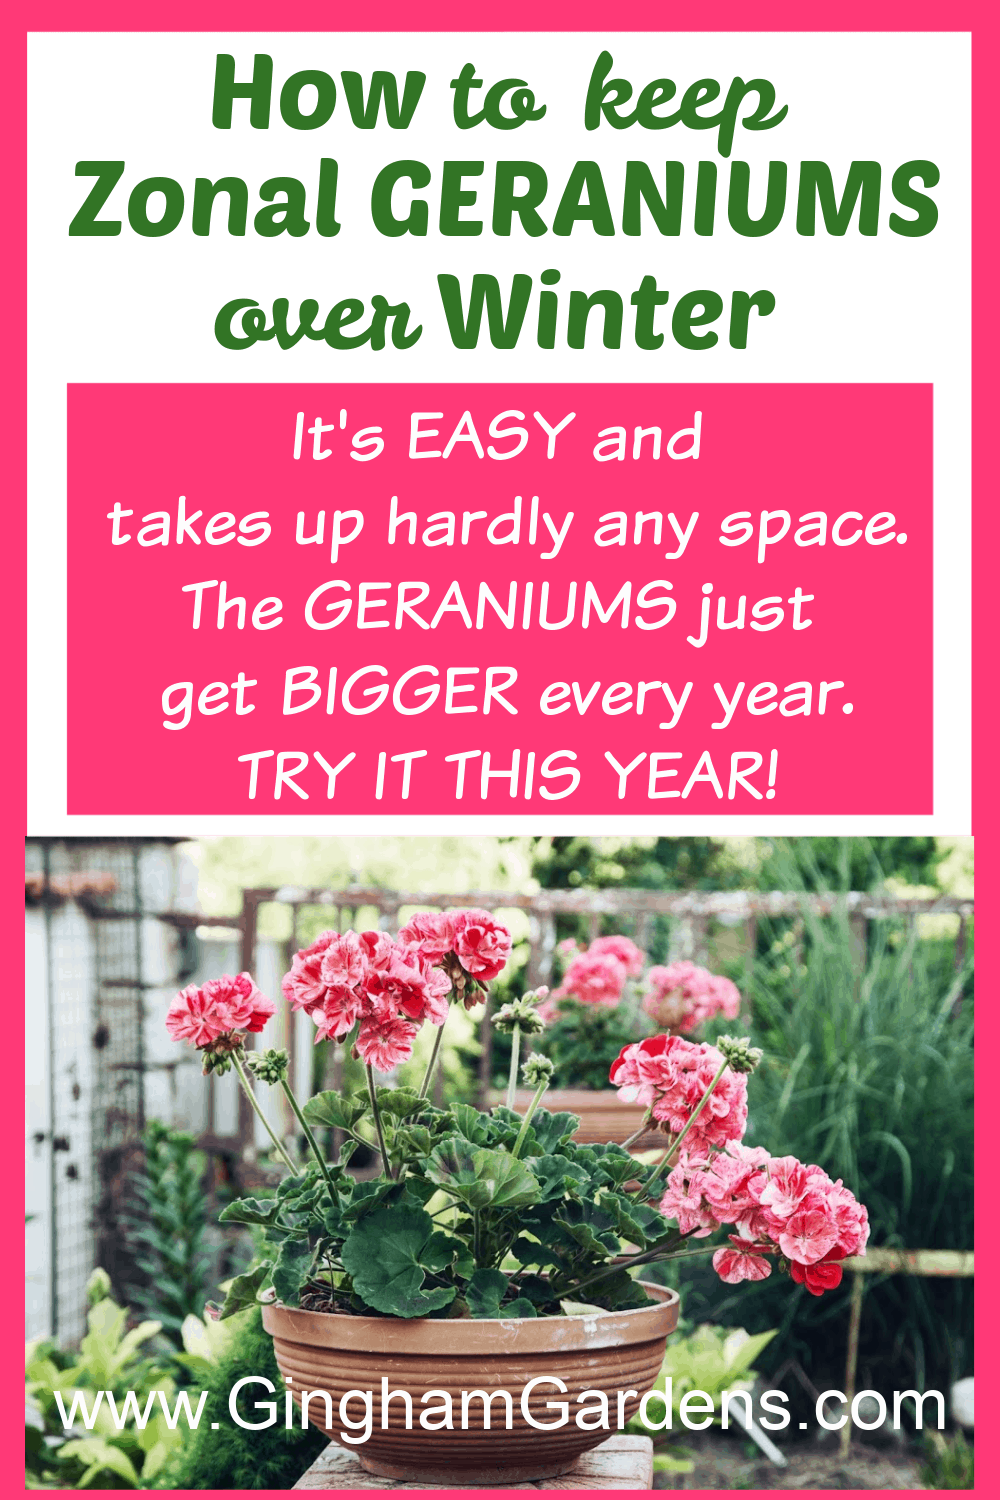 Image of Geranium Flowers with text overlay - How to Keep Zonal Geraniums over Winter